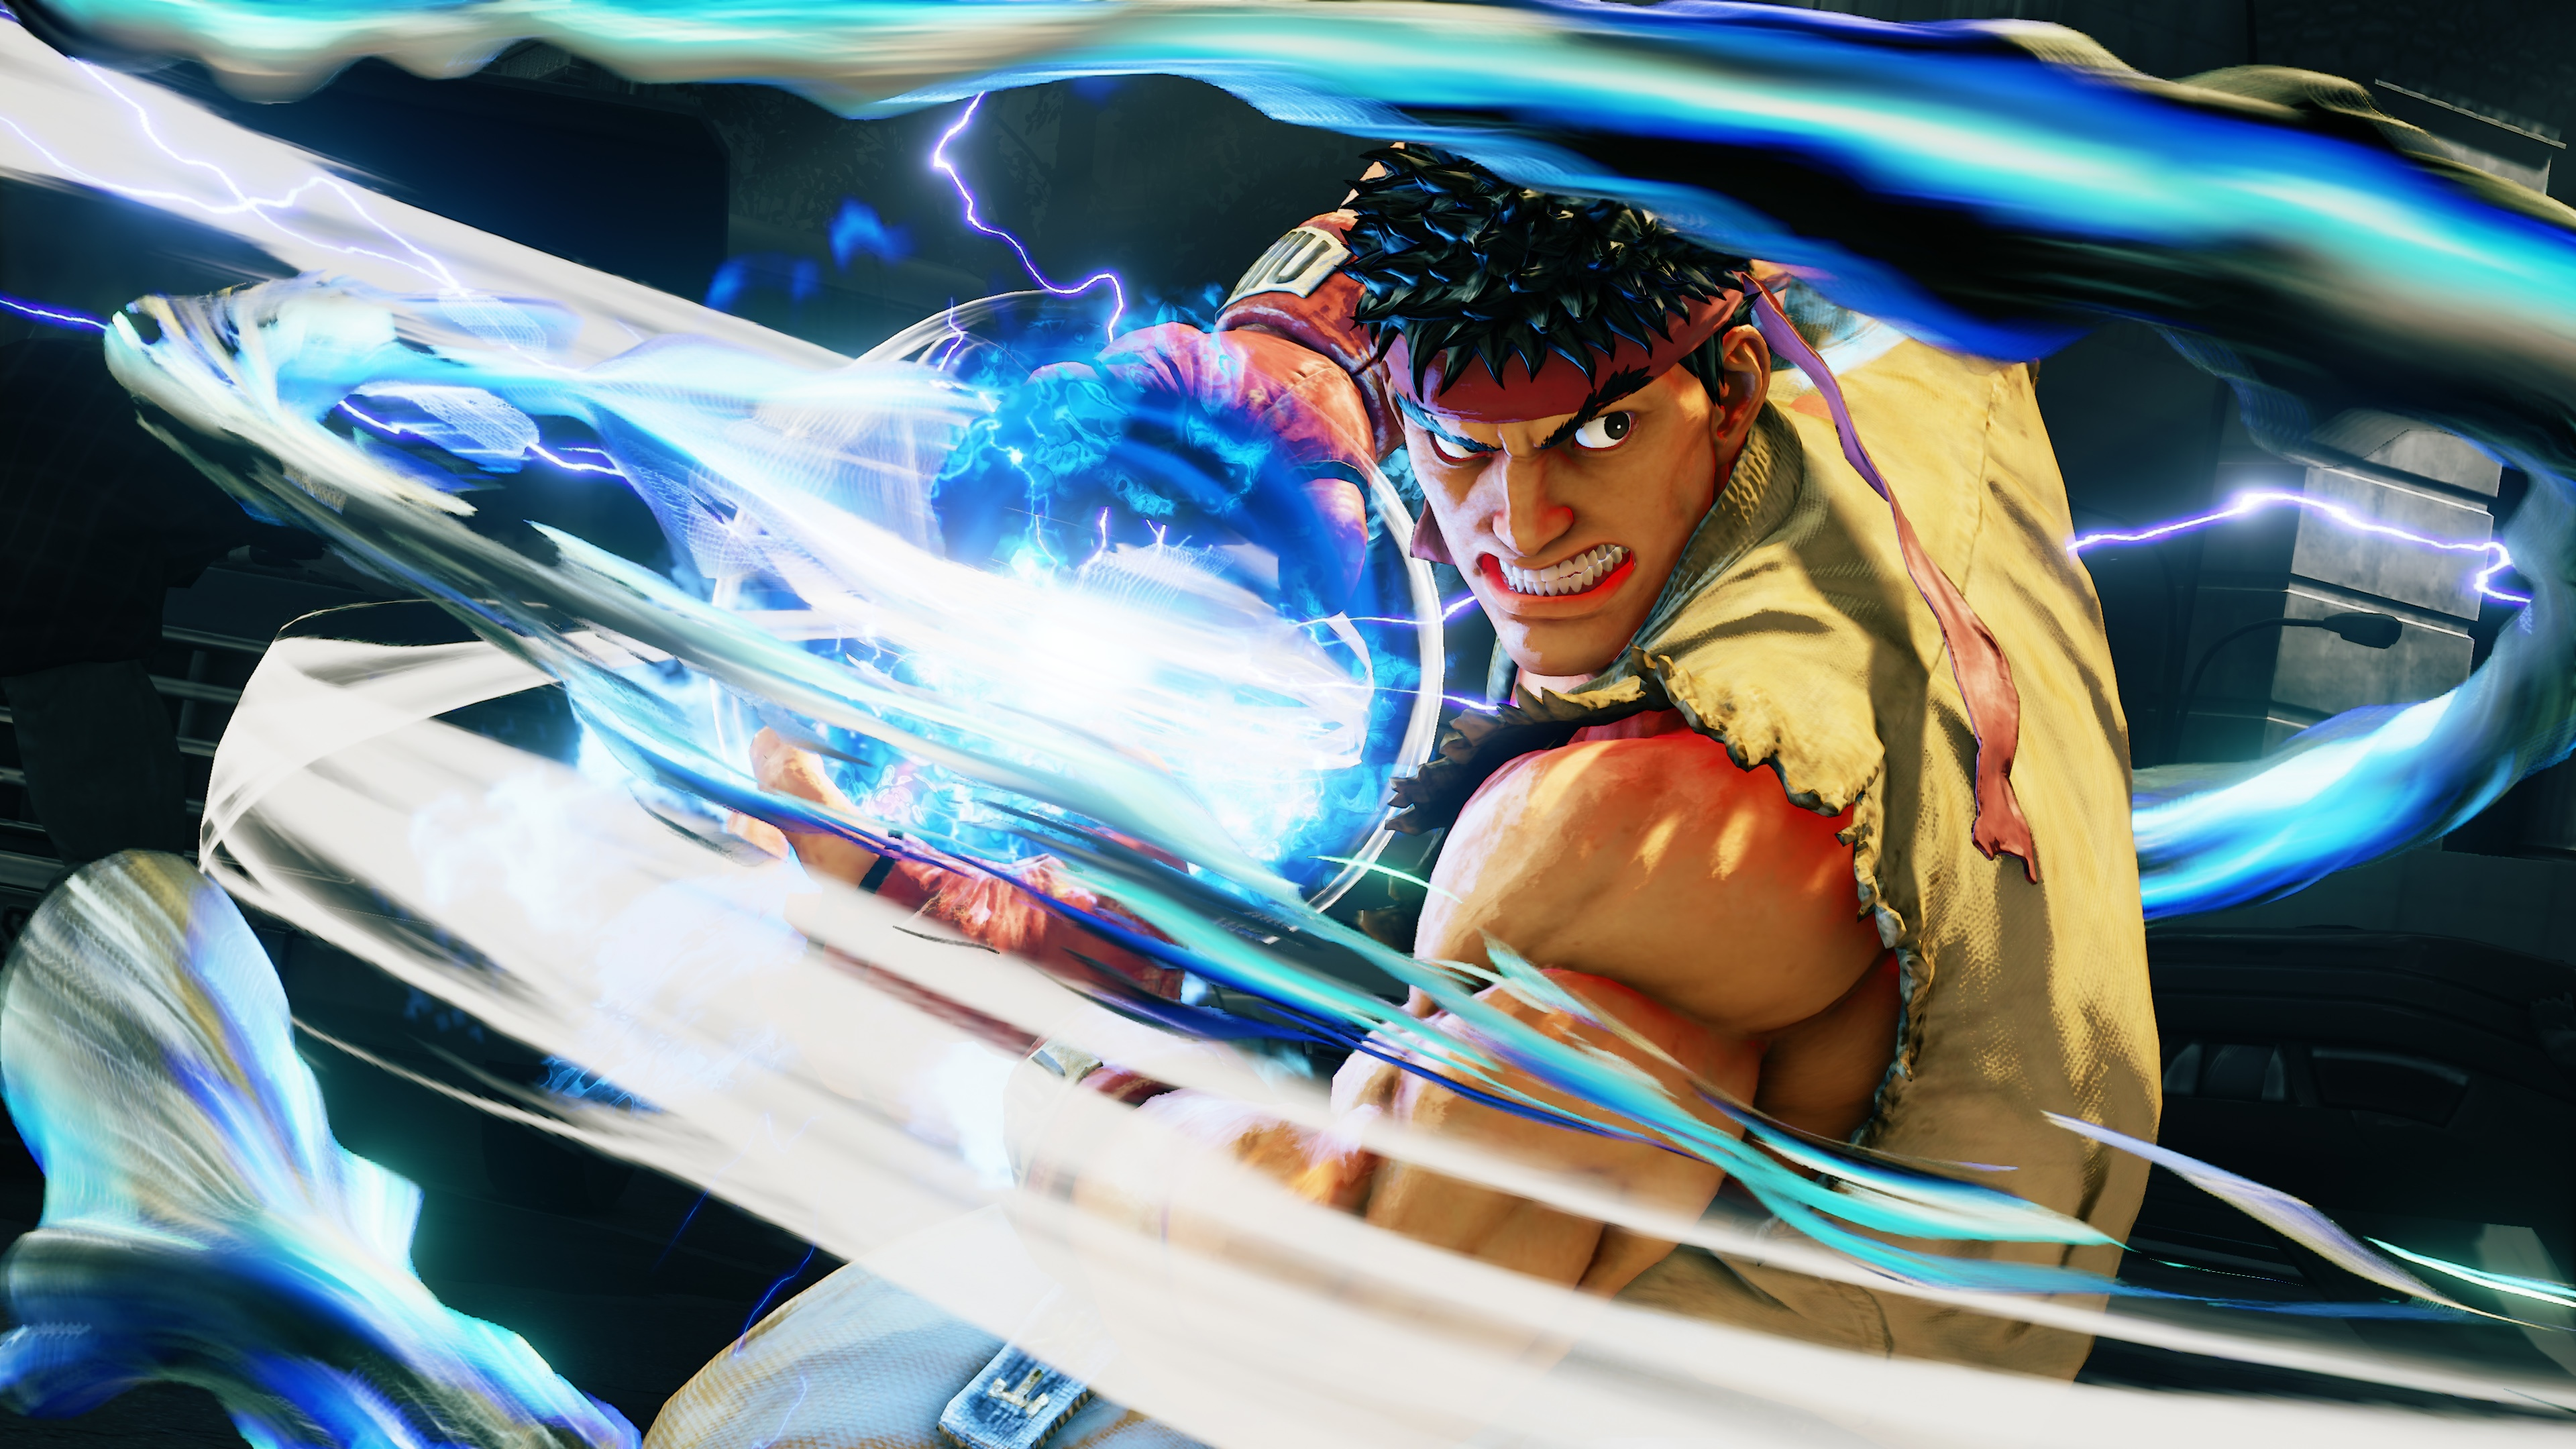 ryu street fighter 5 wallpapers in jpg format for free download